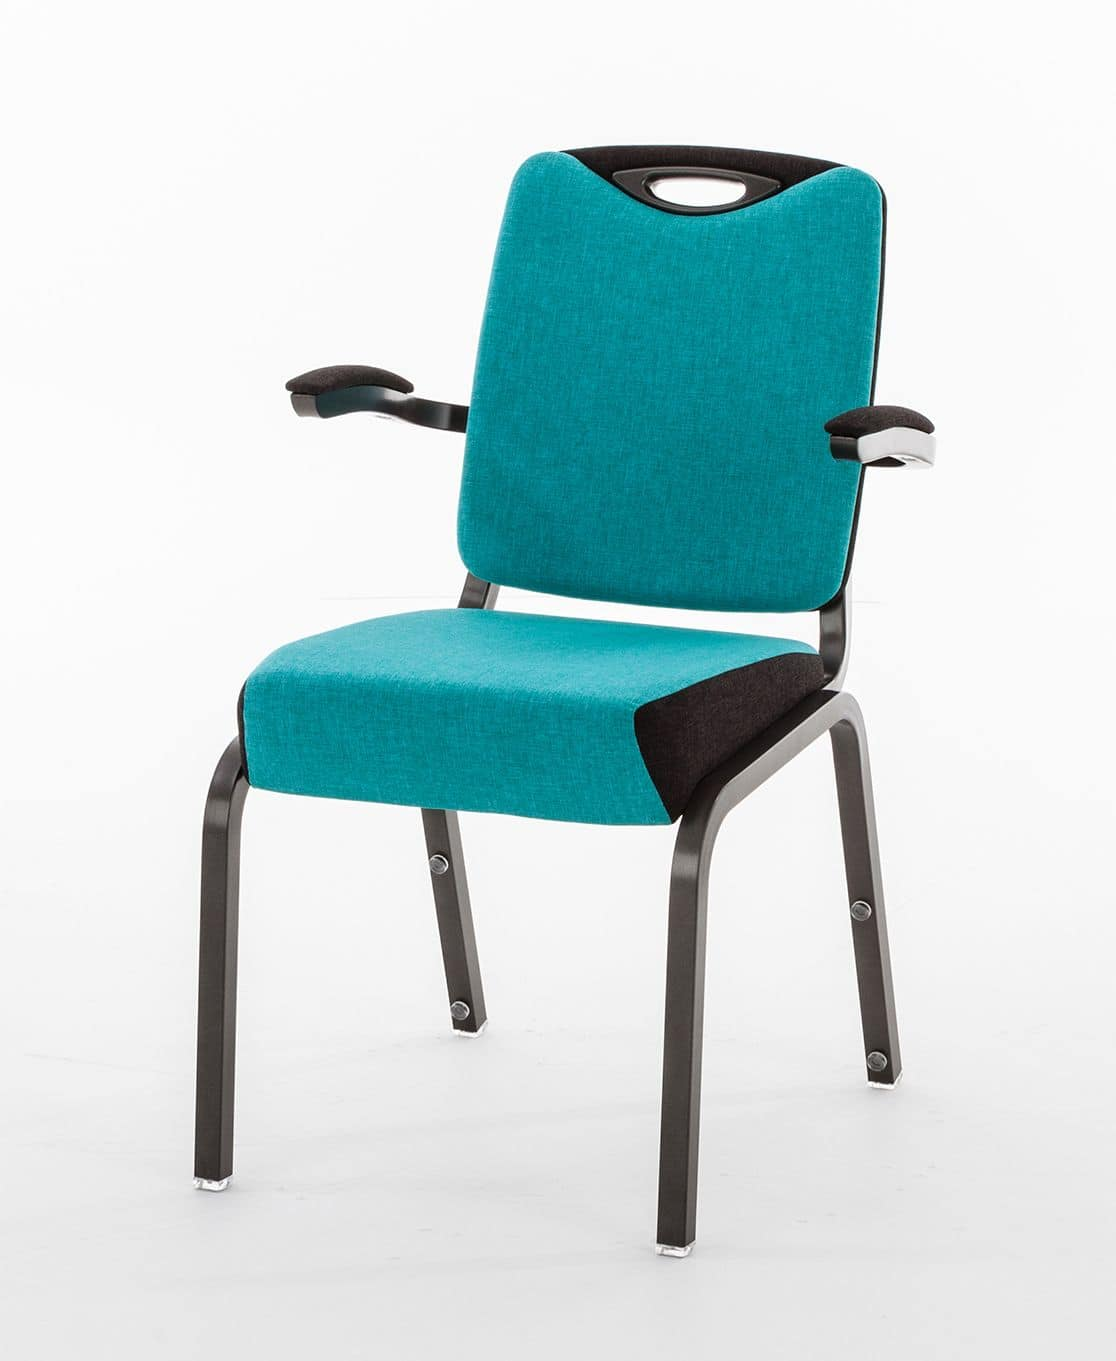 Inicio 09/4HA, Conference chair with armrests, with optional accessories